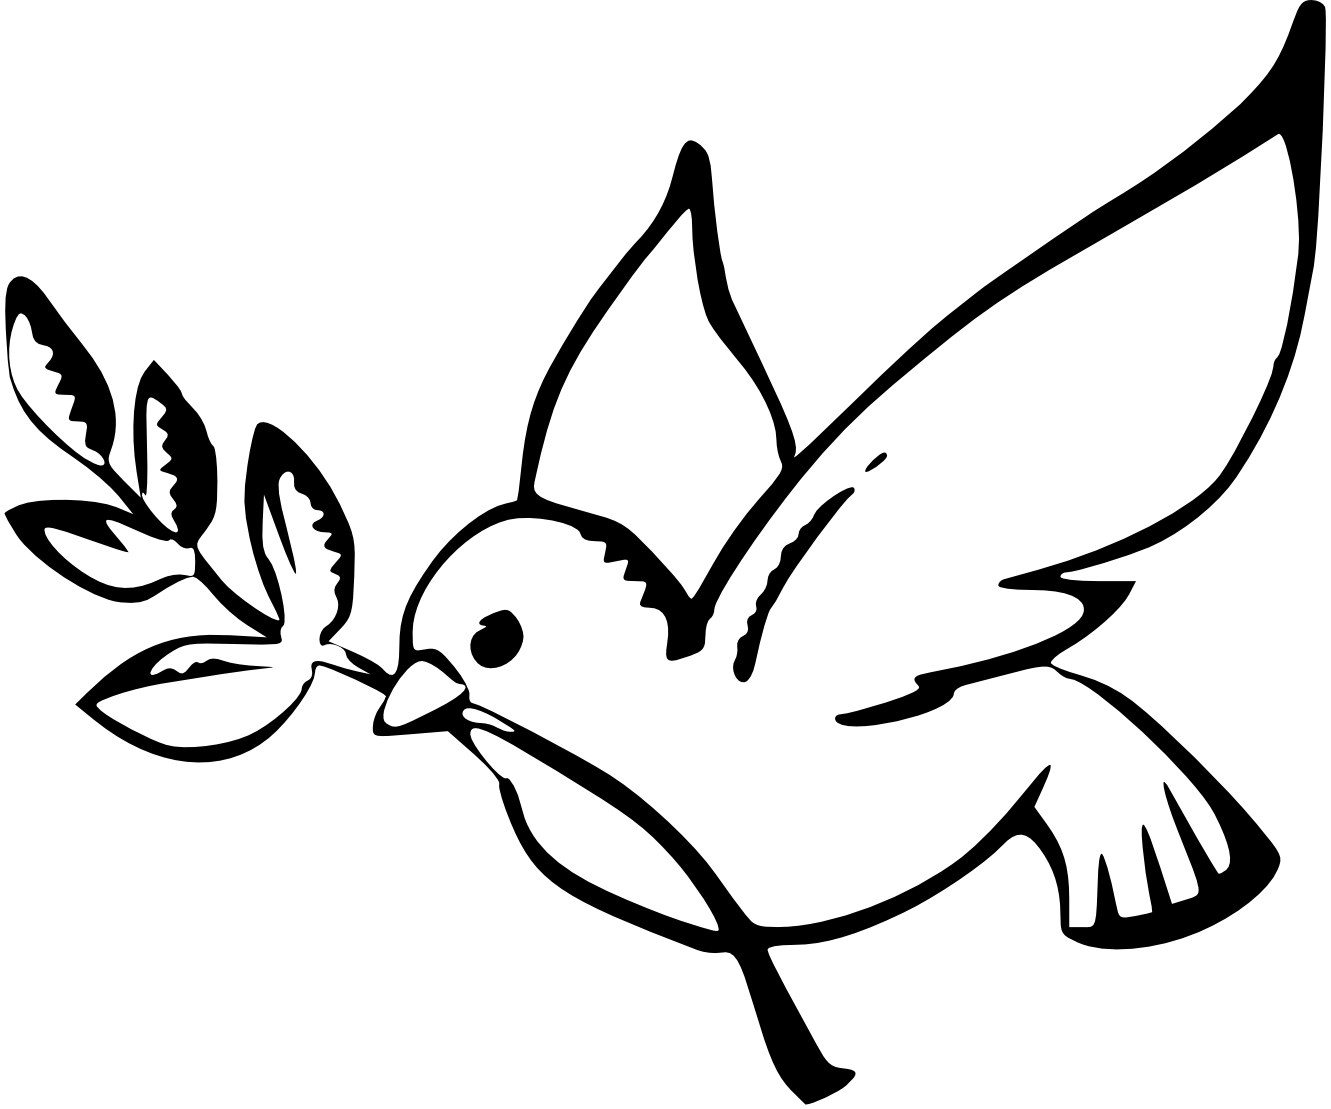 peace dove coloring page free peace dove coloring pages pages coloring home dove coloring page peace